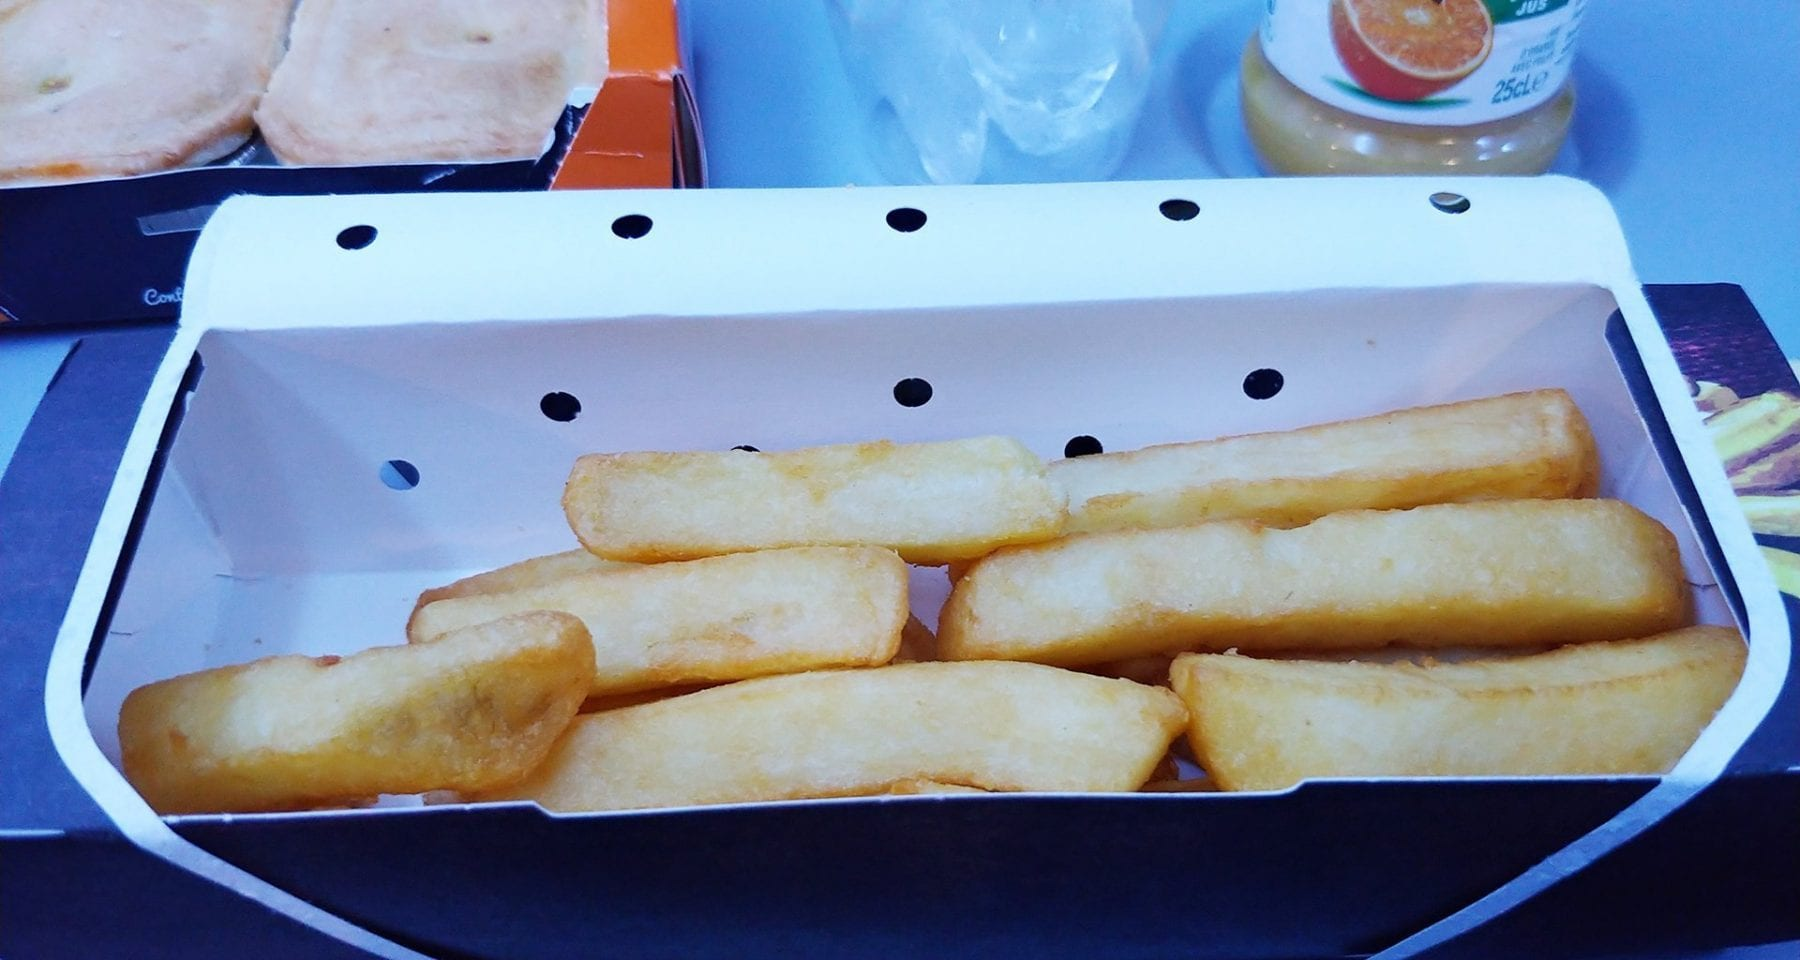 Thomson/TUI inflight meal chips